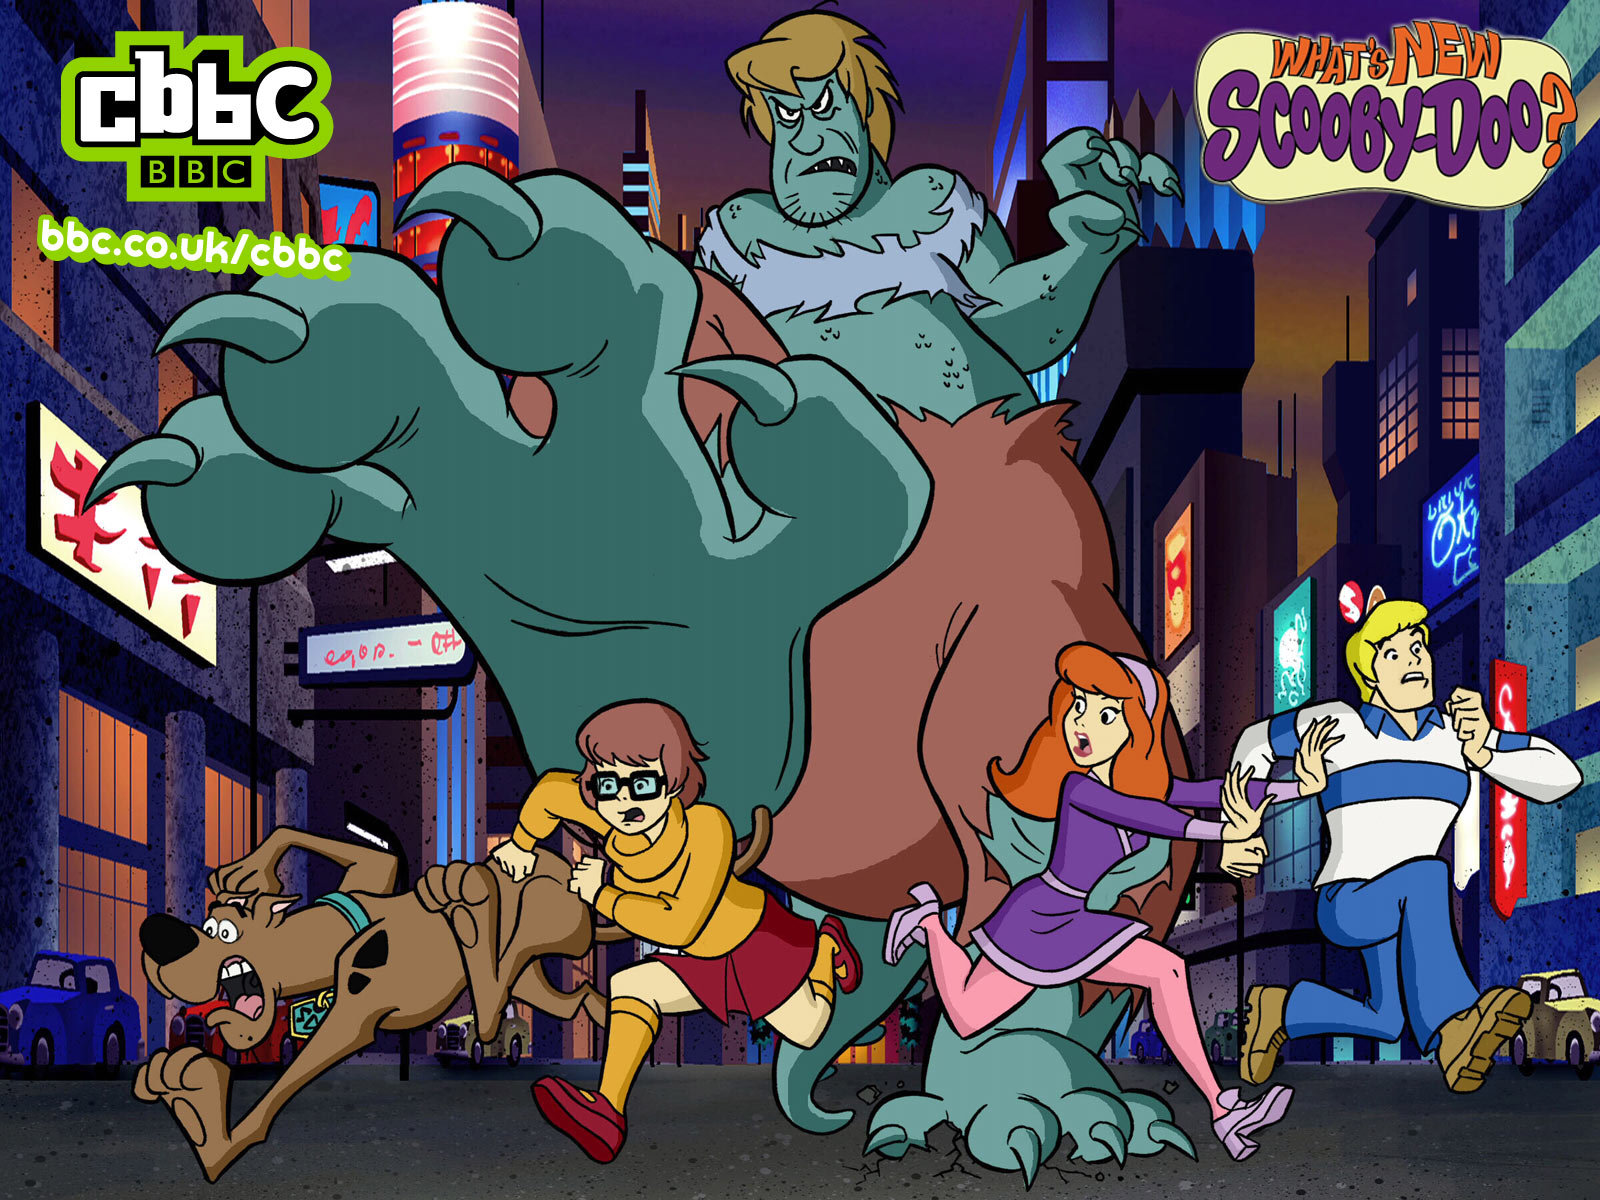 https://i1.wp.com/downloads.bbc.co.uk/apps/vision/gallery/assets/orig//cbbc_wallpapers/shaggy-monster-wallpaper_1600x1200.jpg